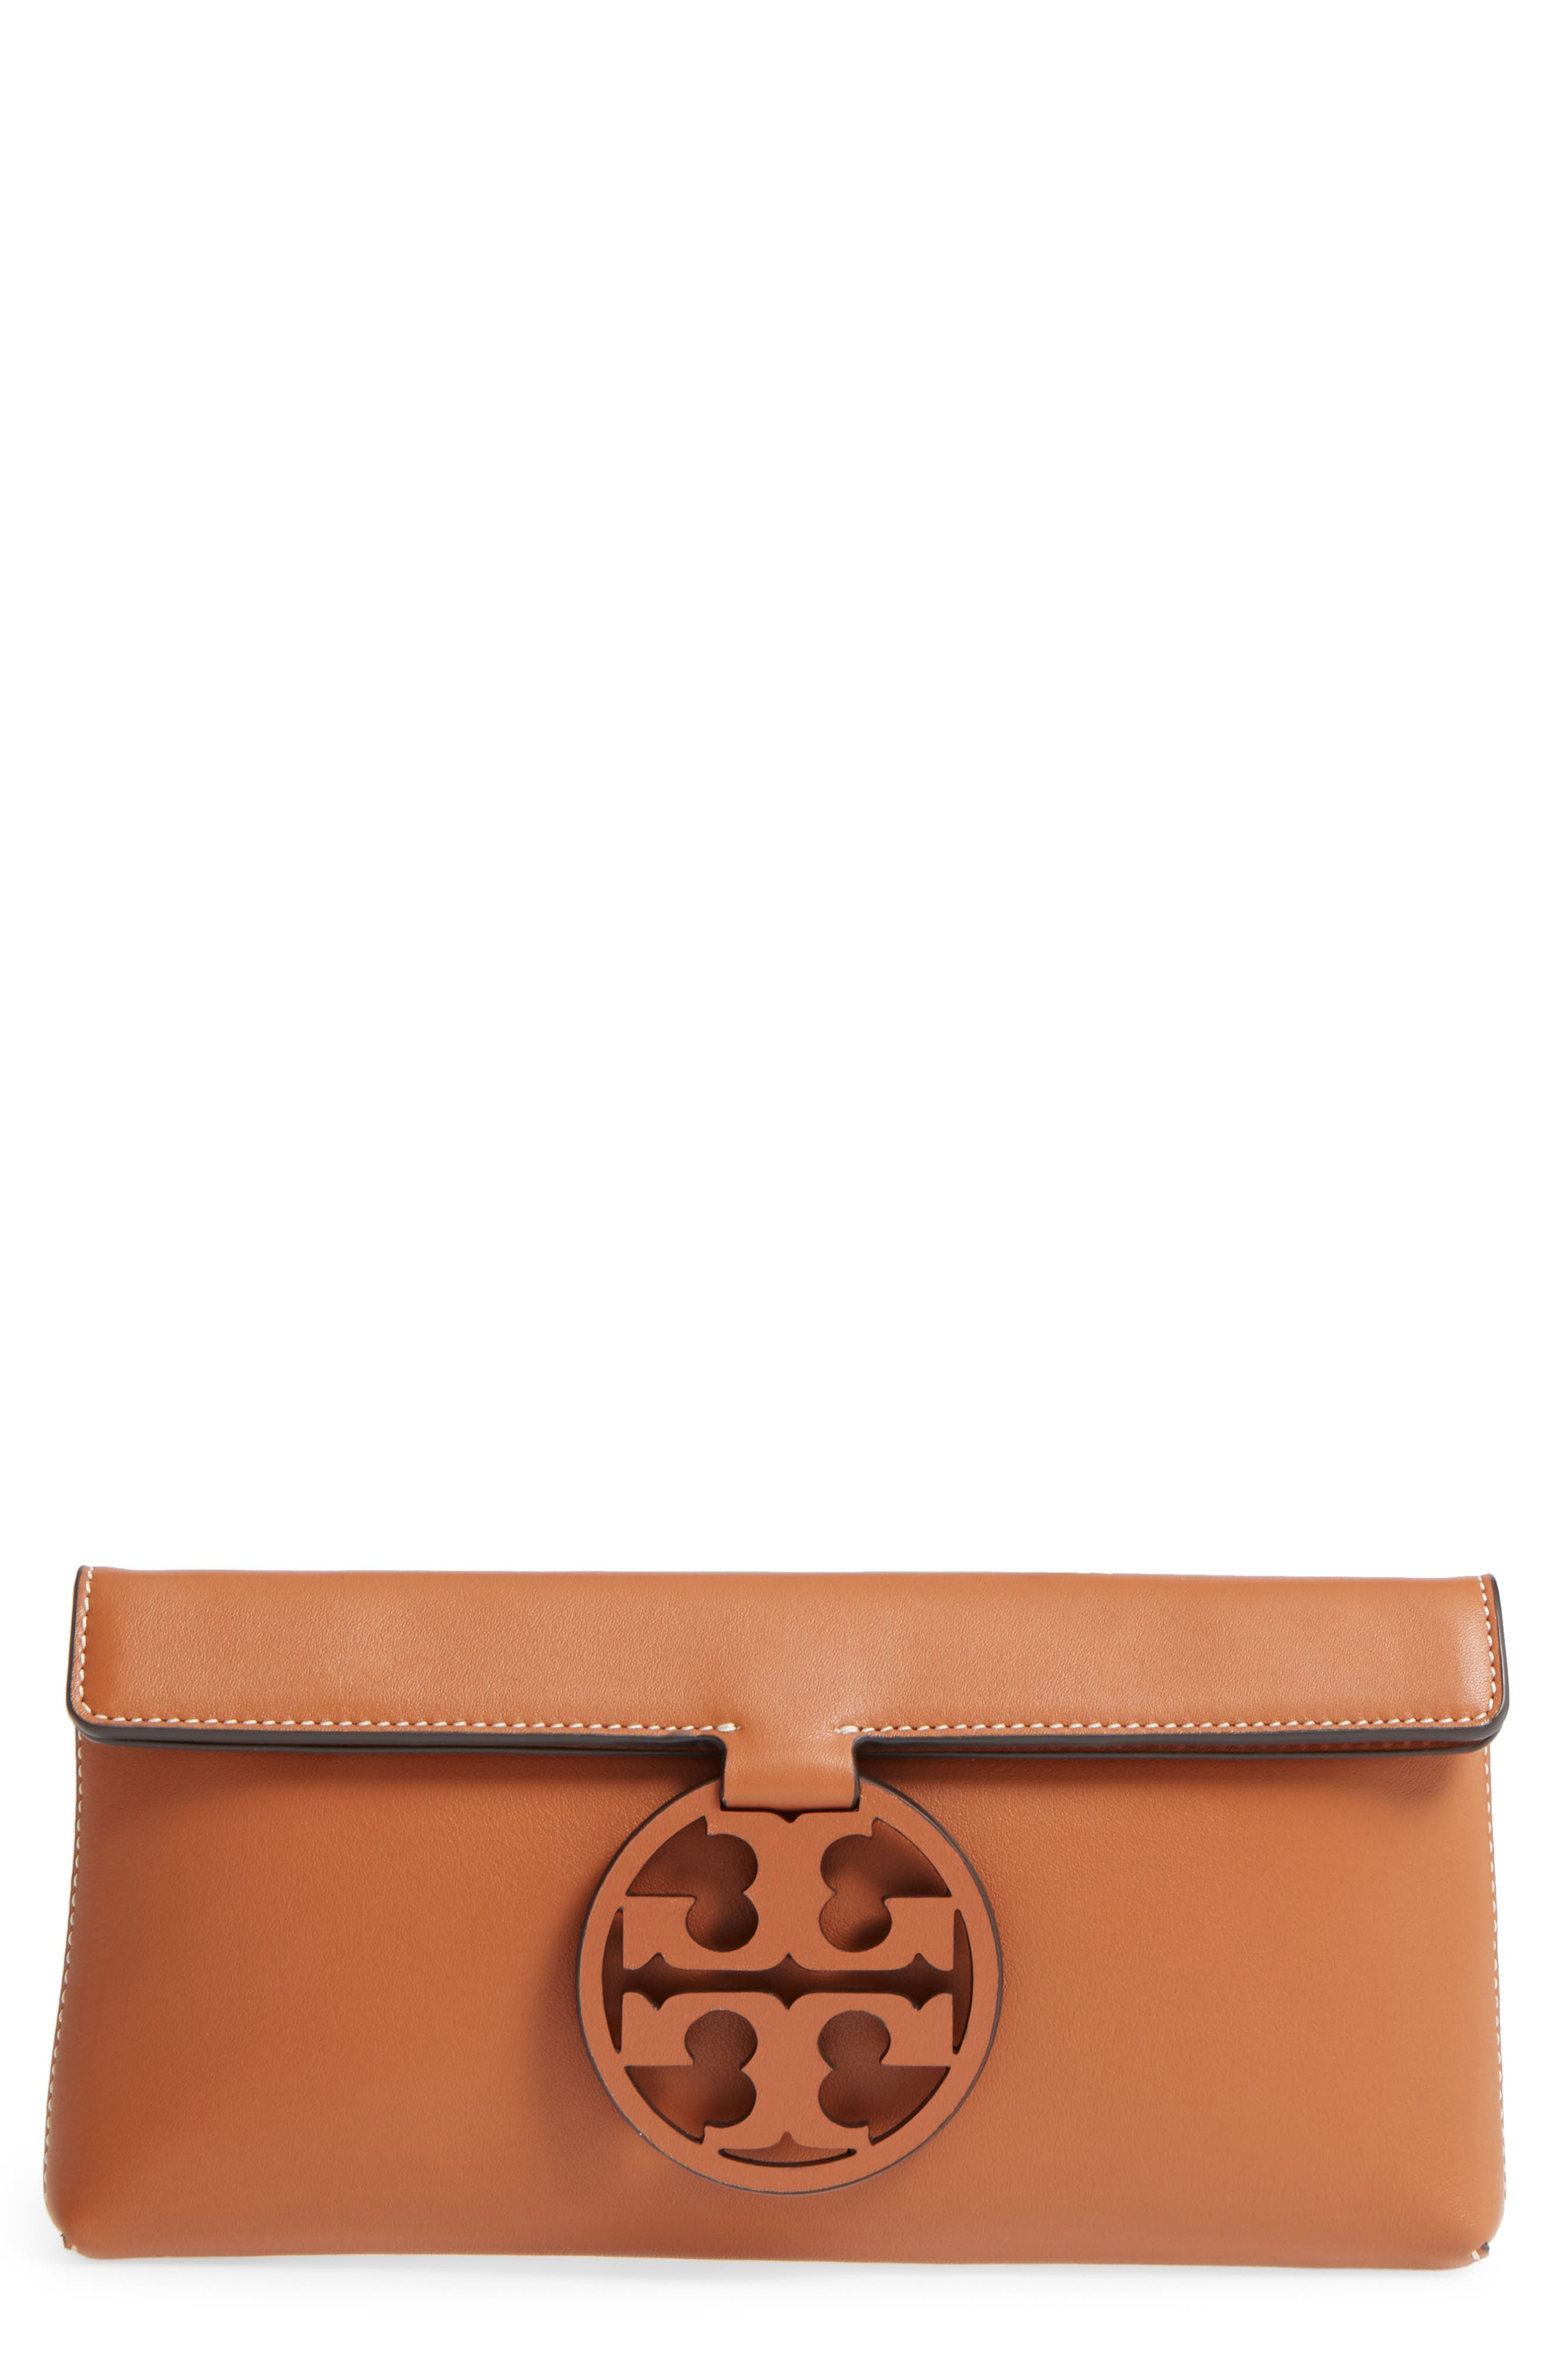 Miller Leather Clutch,                         Main,                         color, New Cuoio